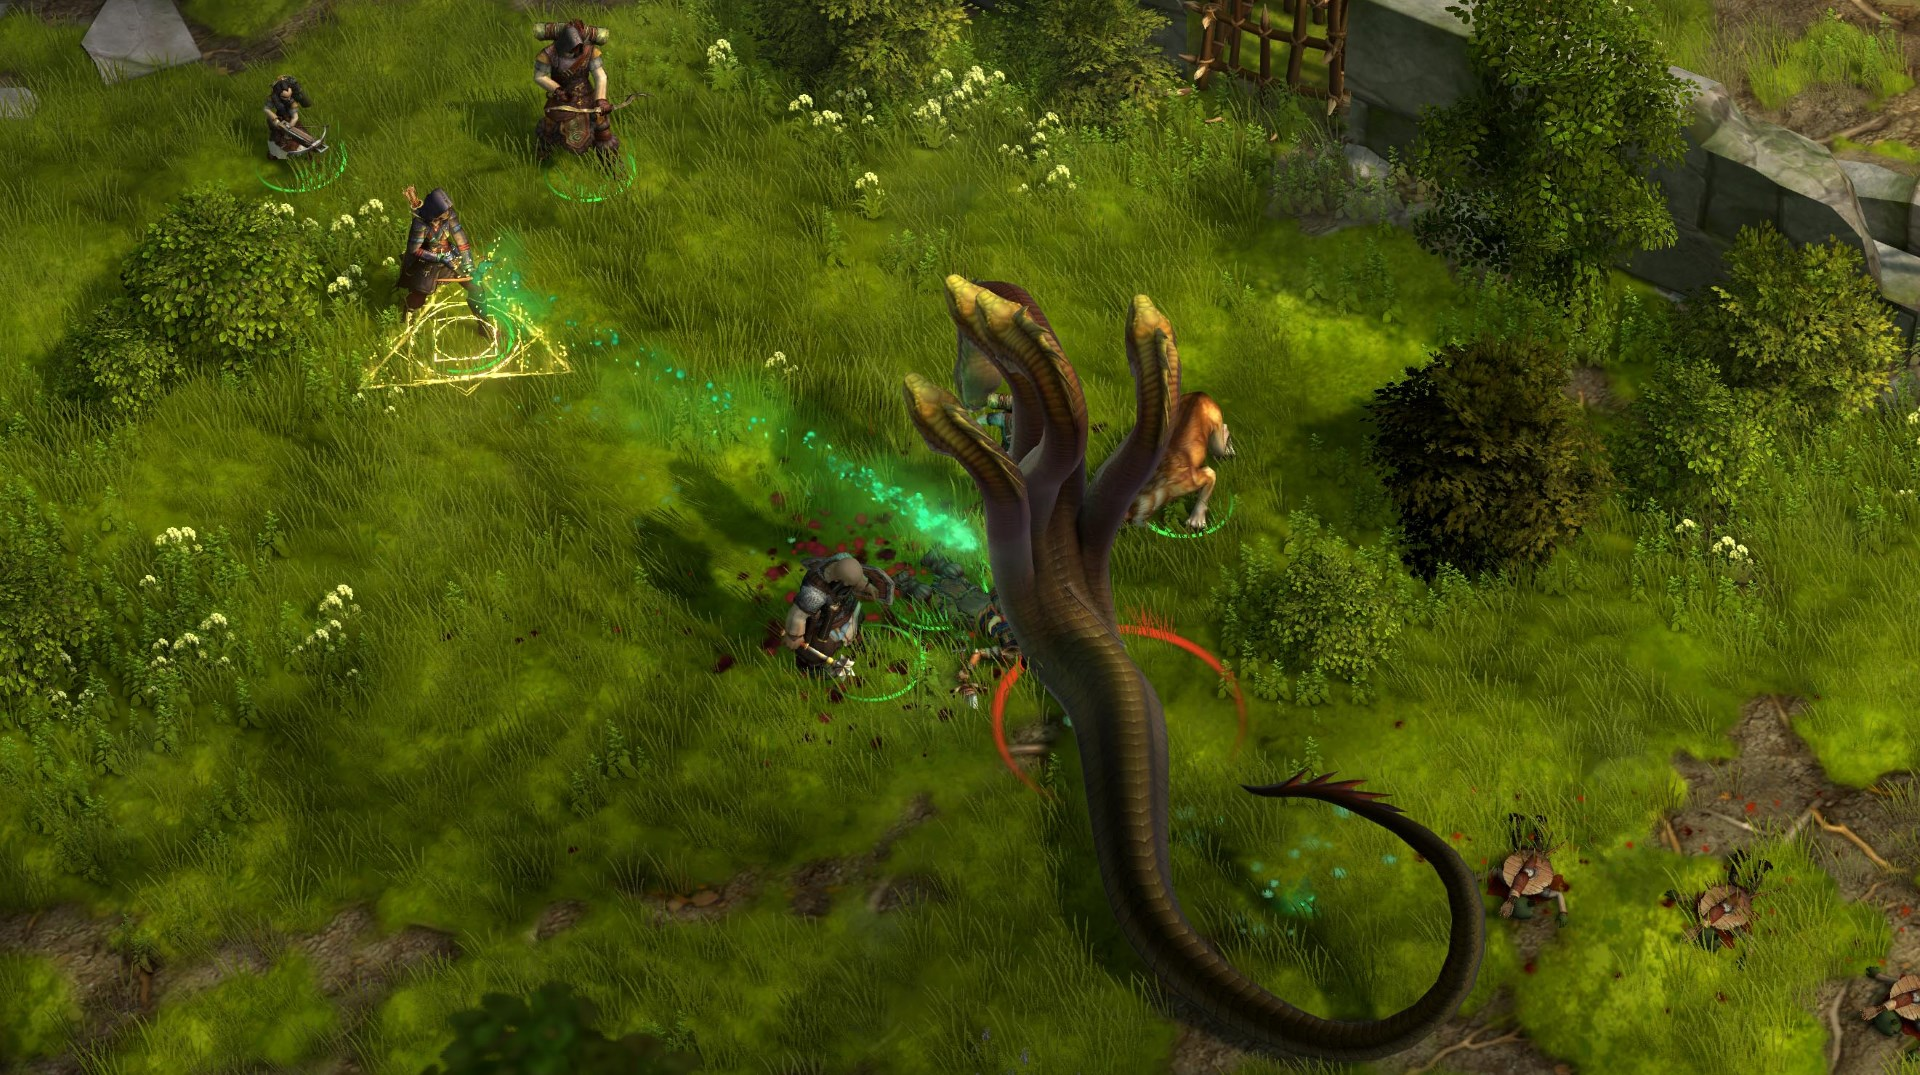 Isometric RPG Pathfinder: Kingmaker is coming this year